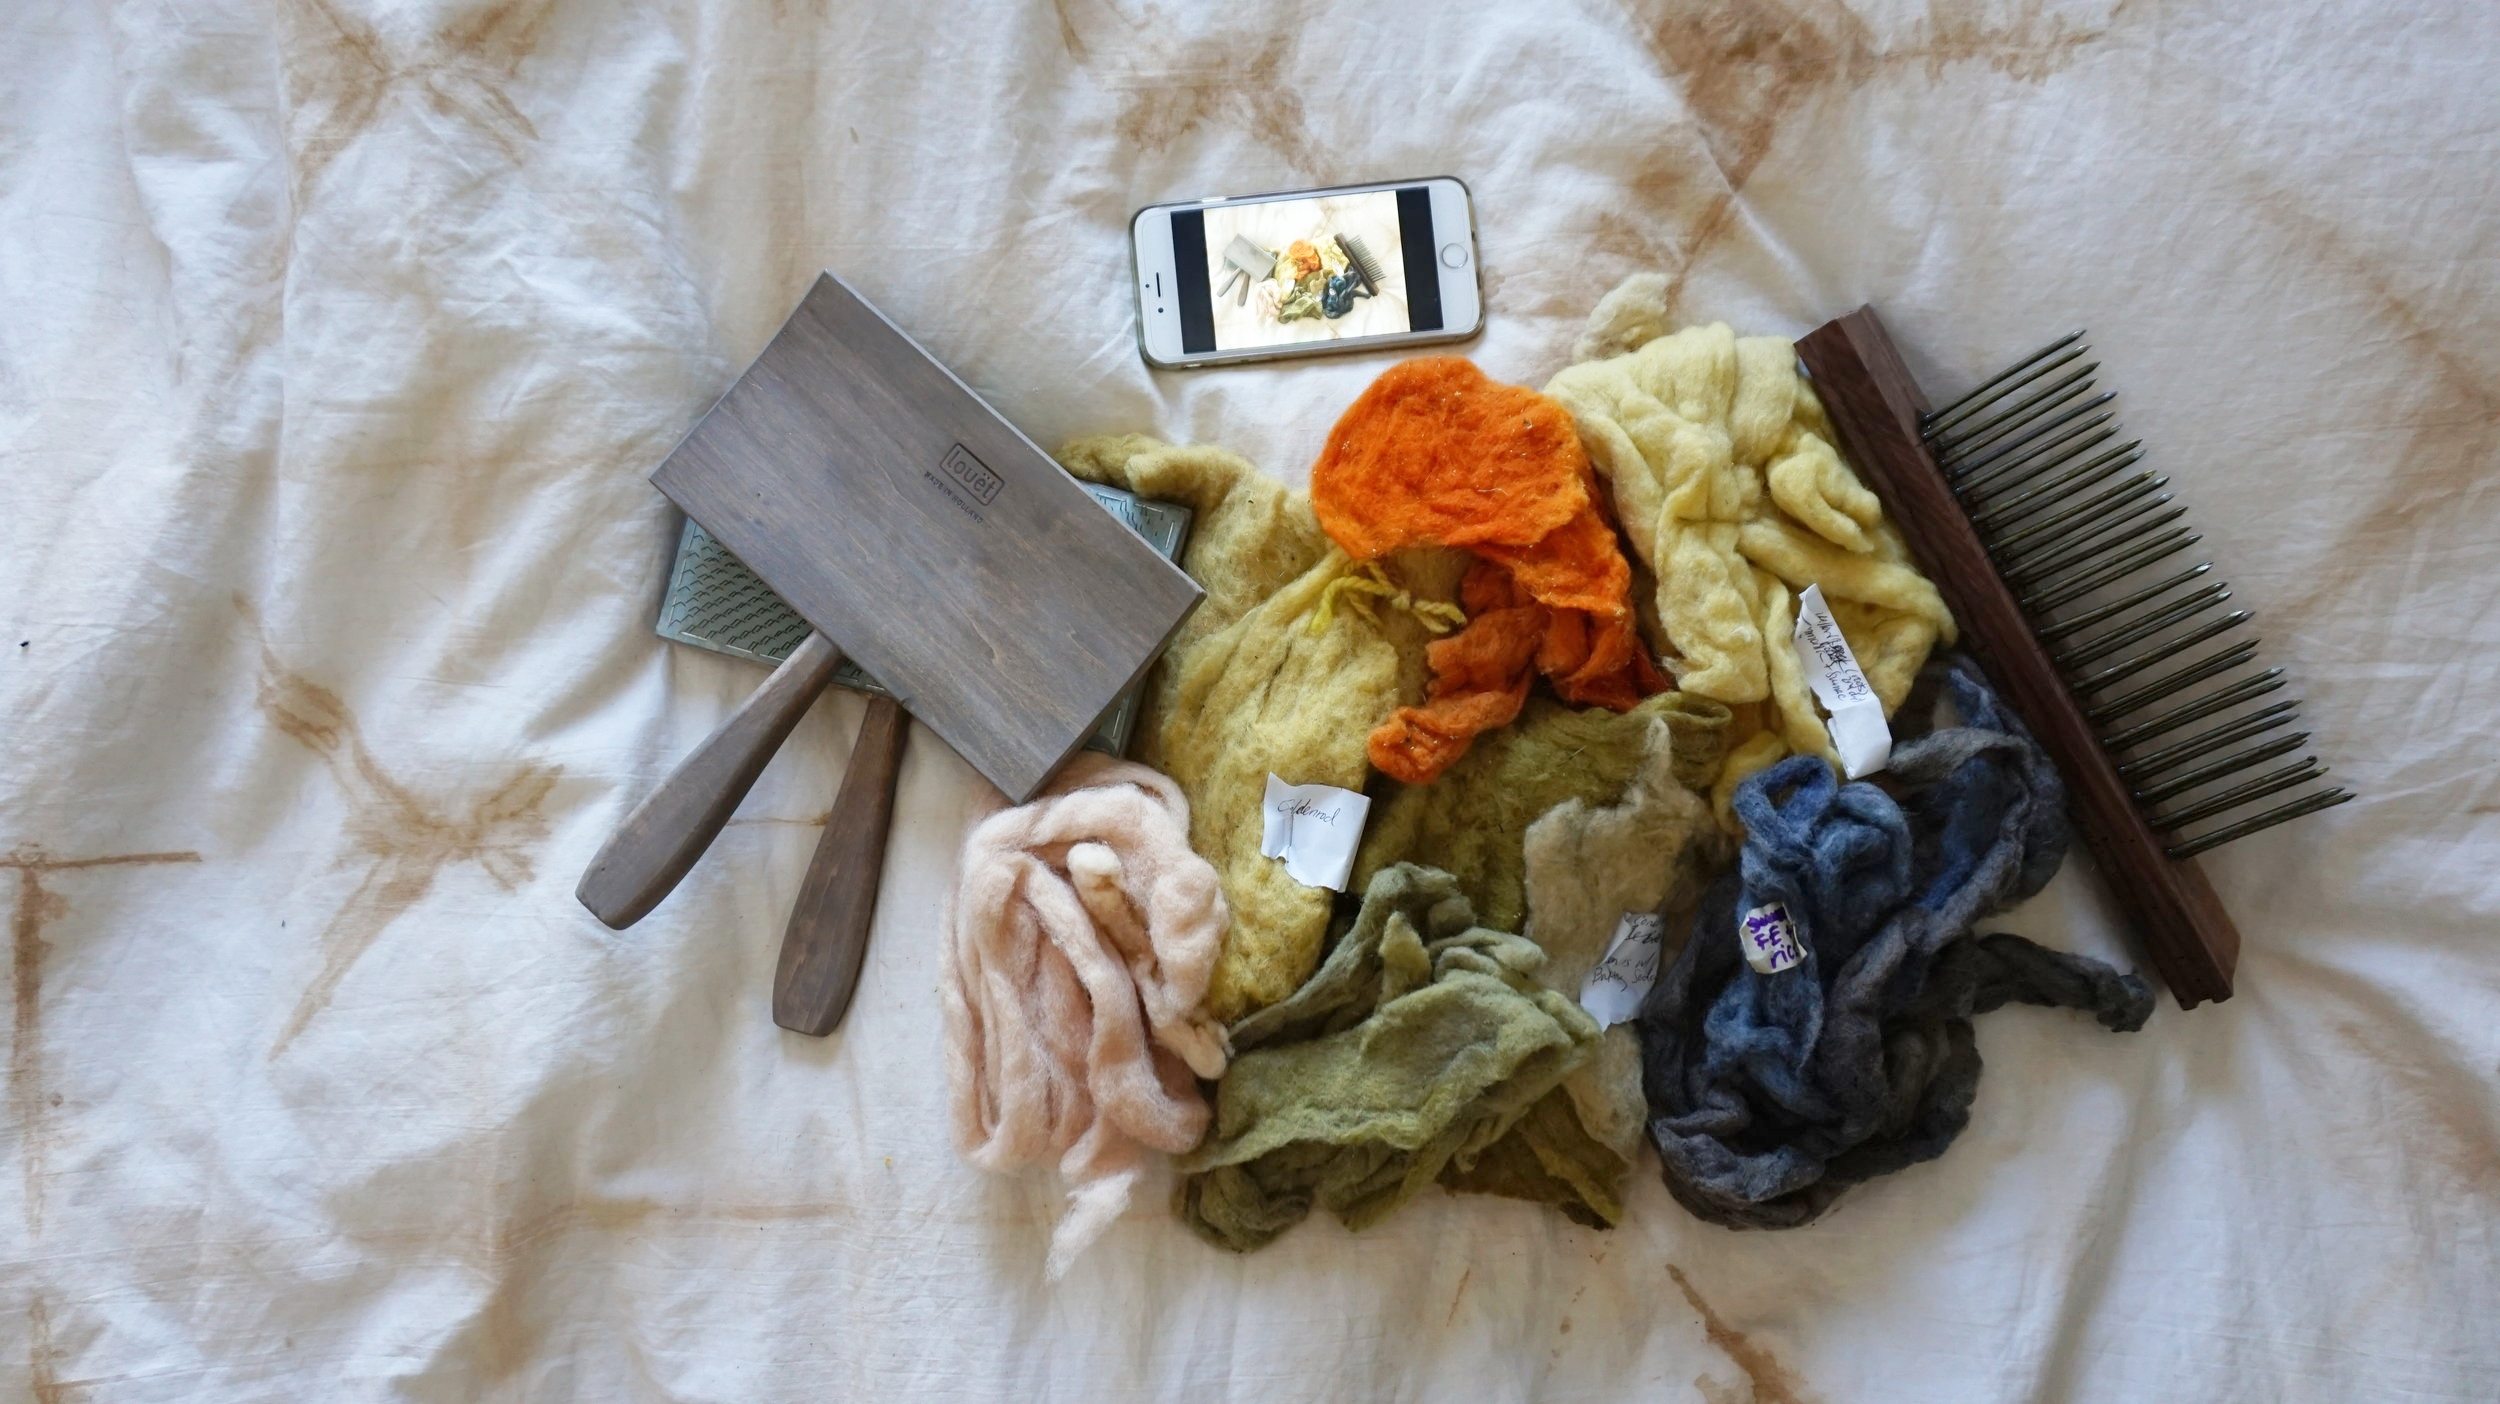 After 6 months of thorough lightfast testing (sunlight) and wash testing (good old-fashioned water and castille soap), the next step is carding or brushing the dyed batts and blending them. Monarda or Bee balm (otherwise known as the bergamot in Earl Grey) is featured as the pink and also some green in the middle; Coneflower (known as echinacea) also in lovely leaf greens; brilliant orange from Coreopsis (also called tickseed); goldenrod that stays as lovely in the dyepot as it does in nature; and Forbidden Rice is that dastardly gorgeous blue. The Kevin McCallister type tool (far right) is a hackle which helps align and direct the fibers once fluffed. I made this tool with a precise drill press in reclaimed walnut flooring although fibers really aren't that picky and you can certainly drill by hand. This is shot on a duvet shibori dyed with peony flowers of handsewn vintage linens.